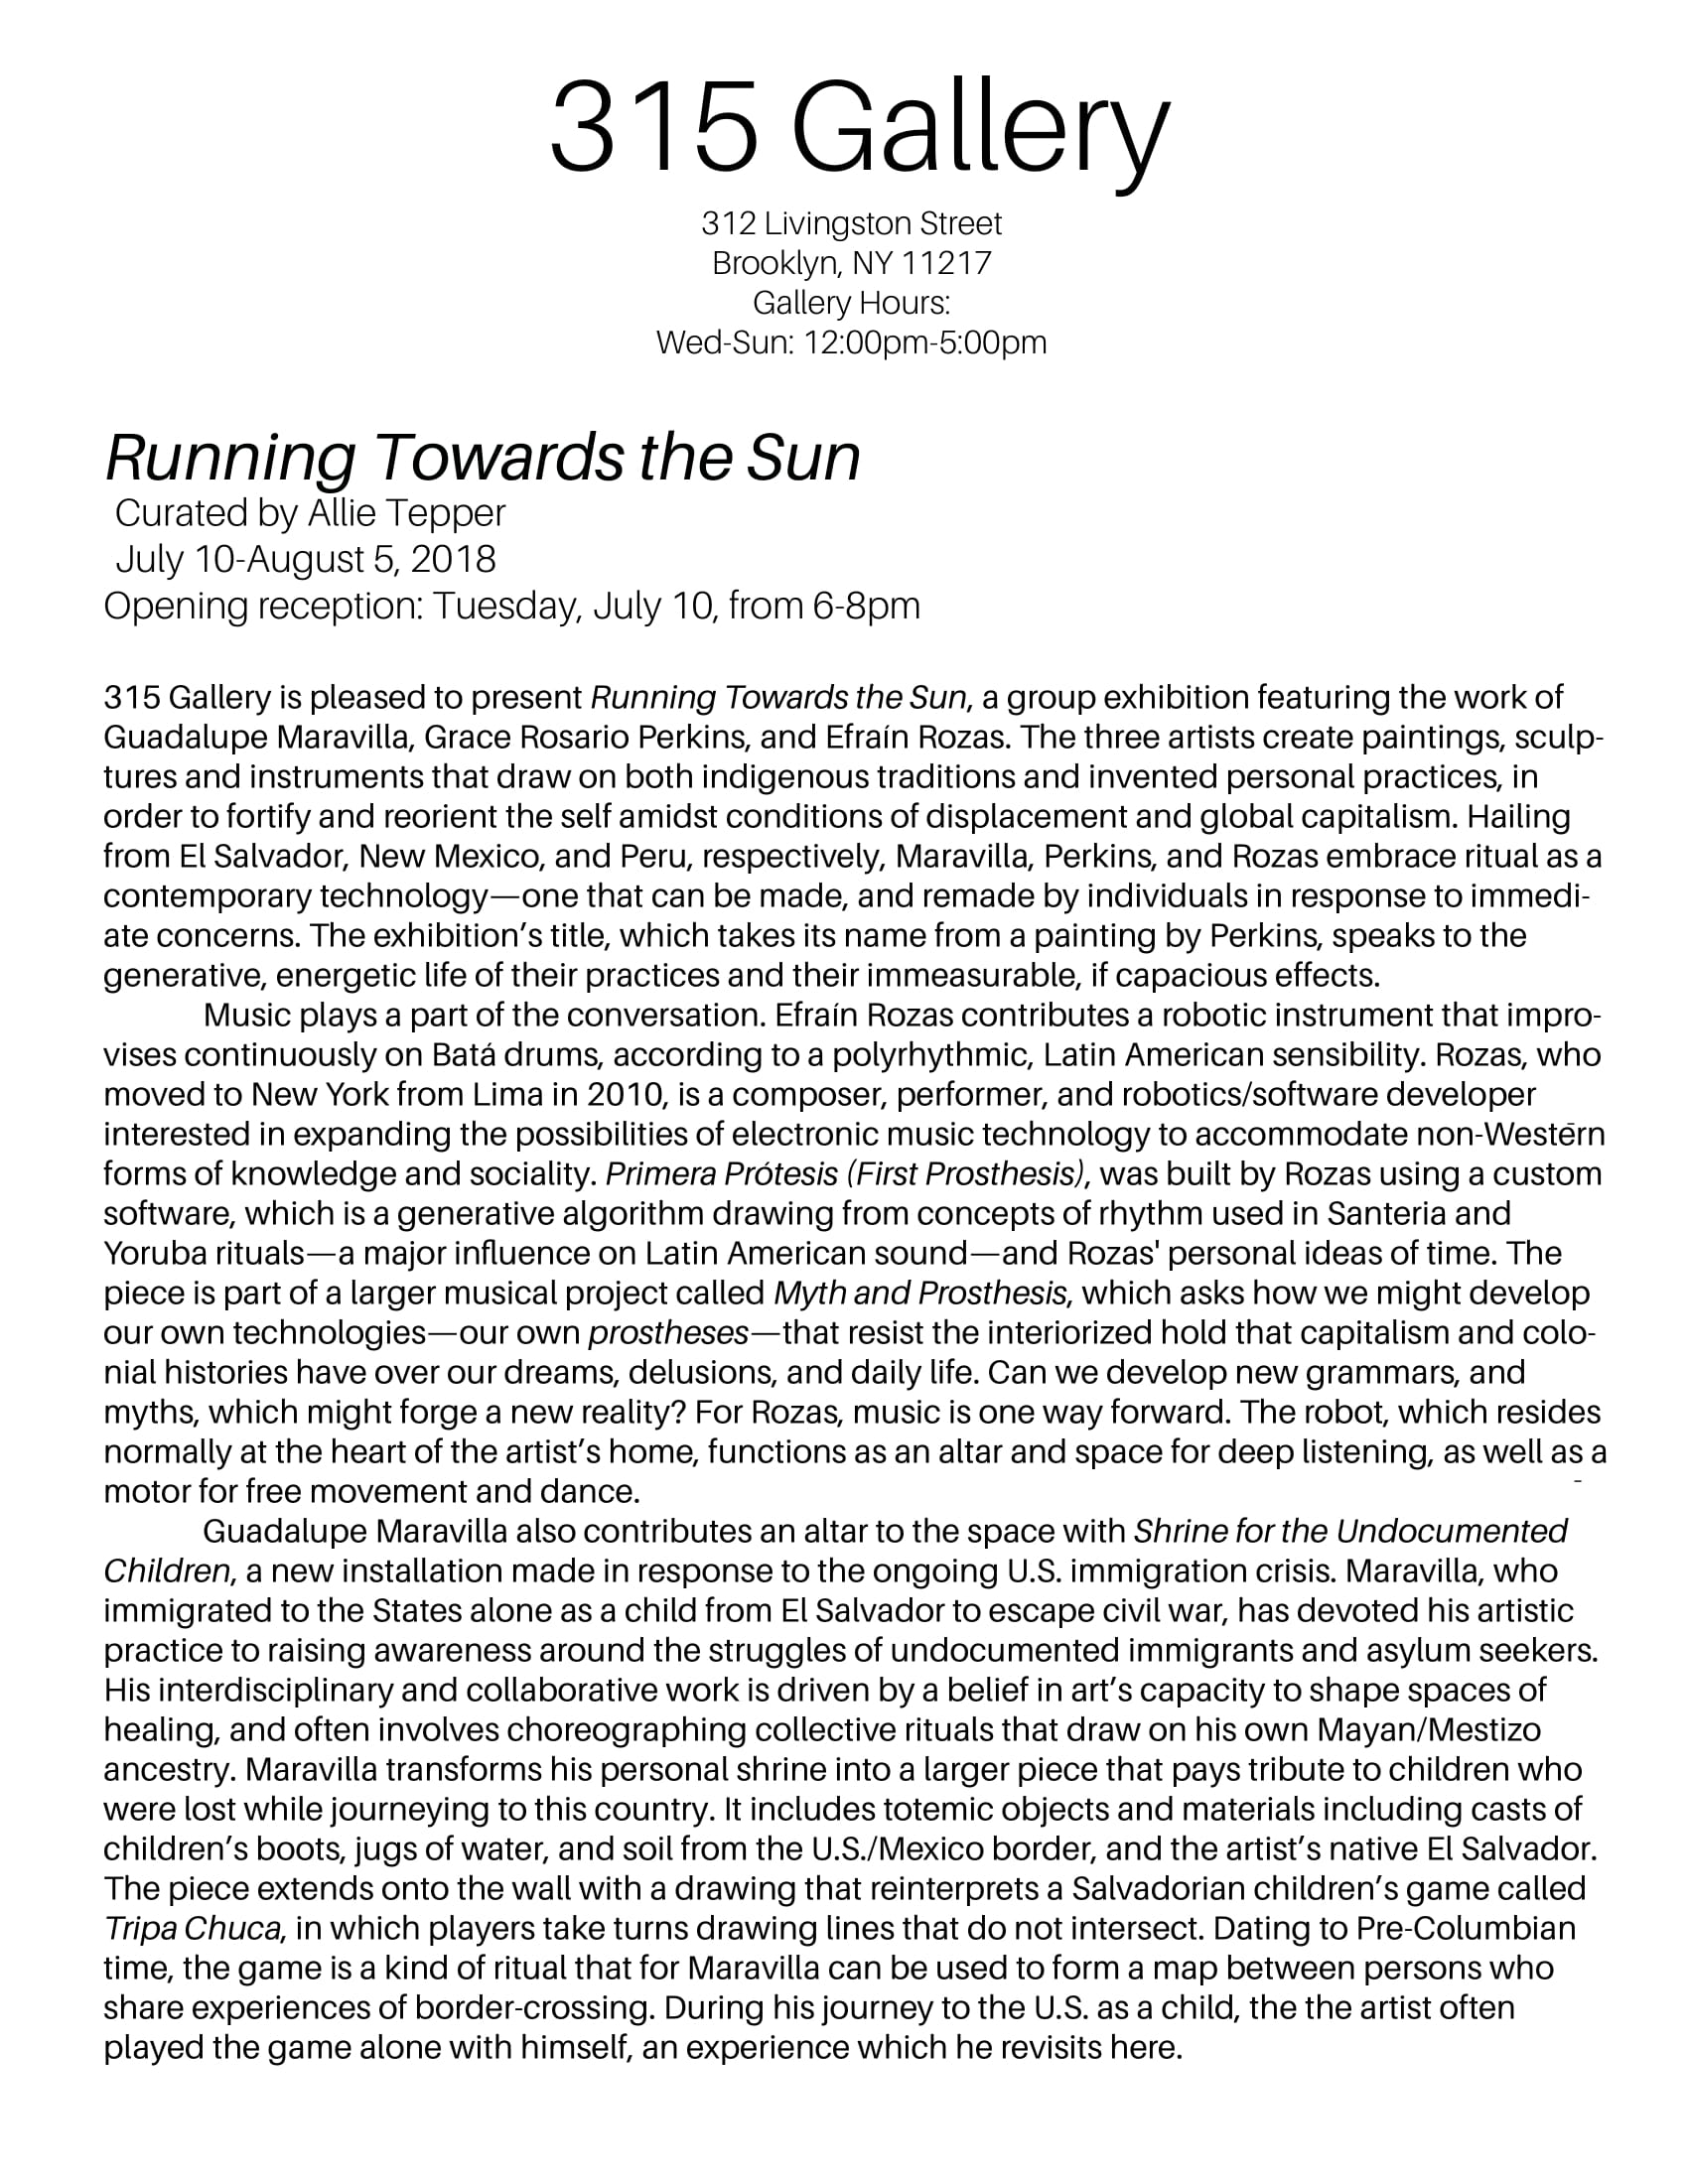 Running Towards the Sun Press Release (dragged)-1.jpg